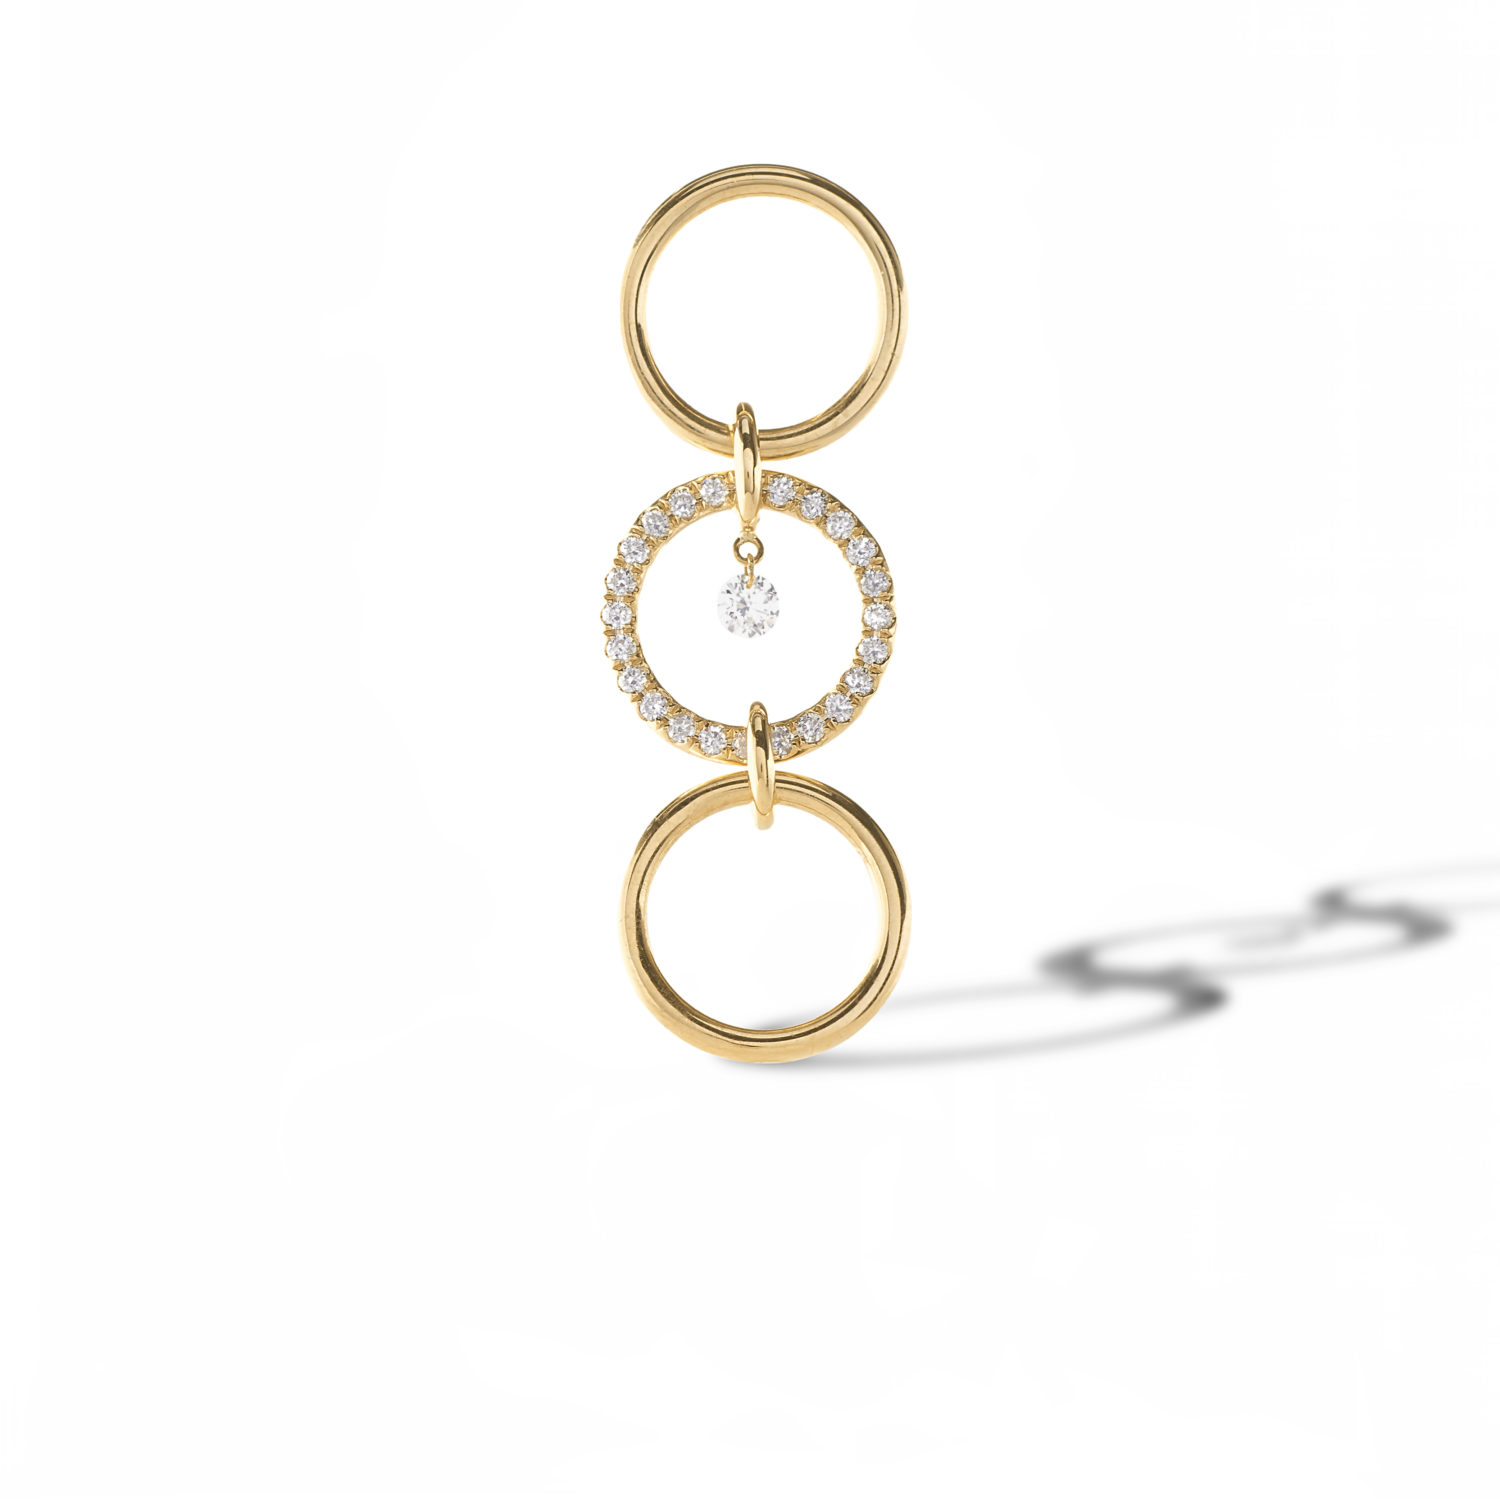 BOUCLE D'OREILLE PADAM DIAMANTS PERSEE